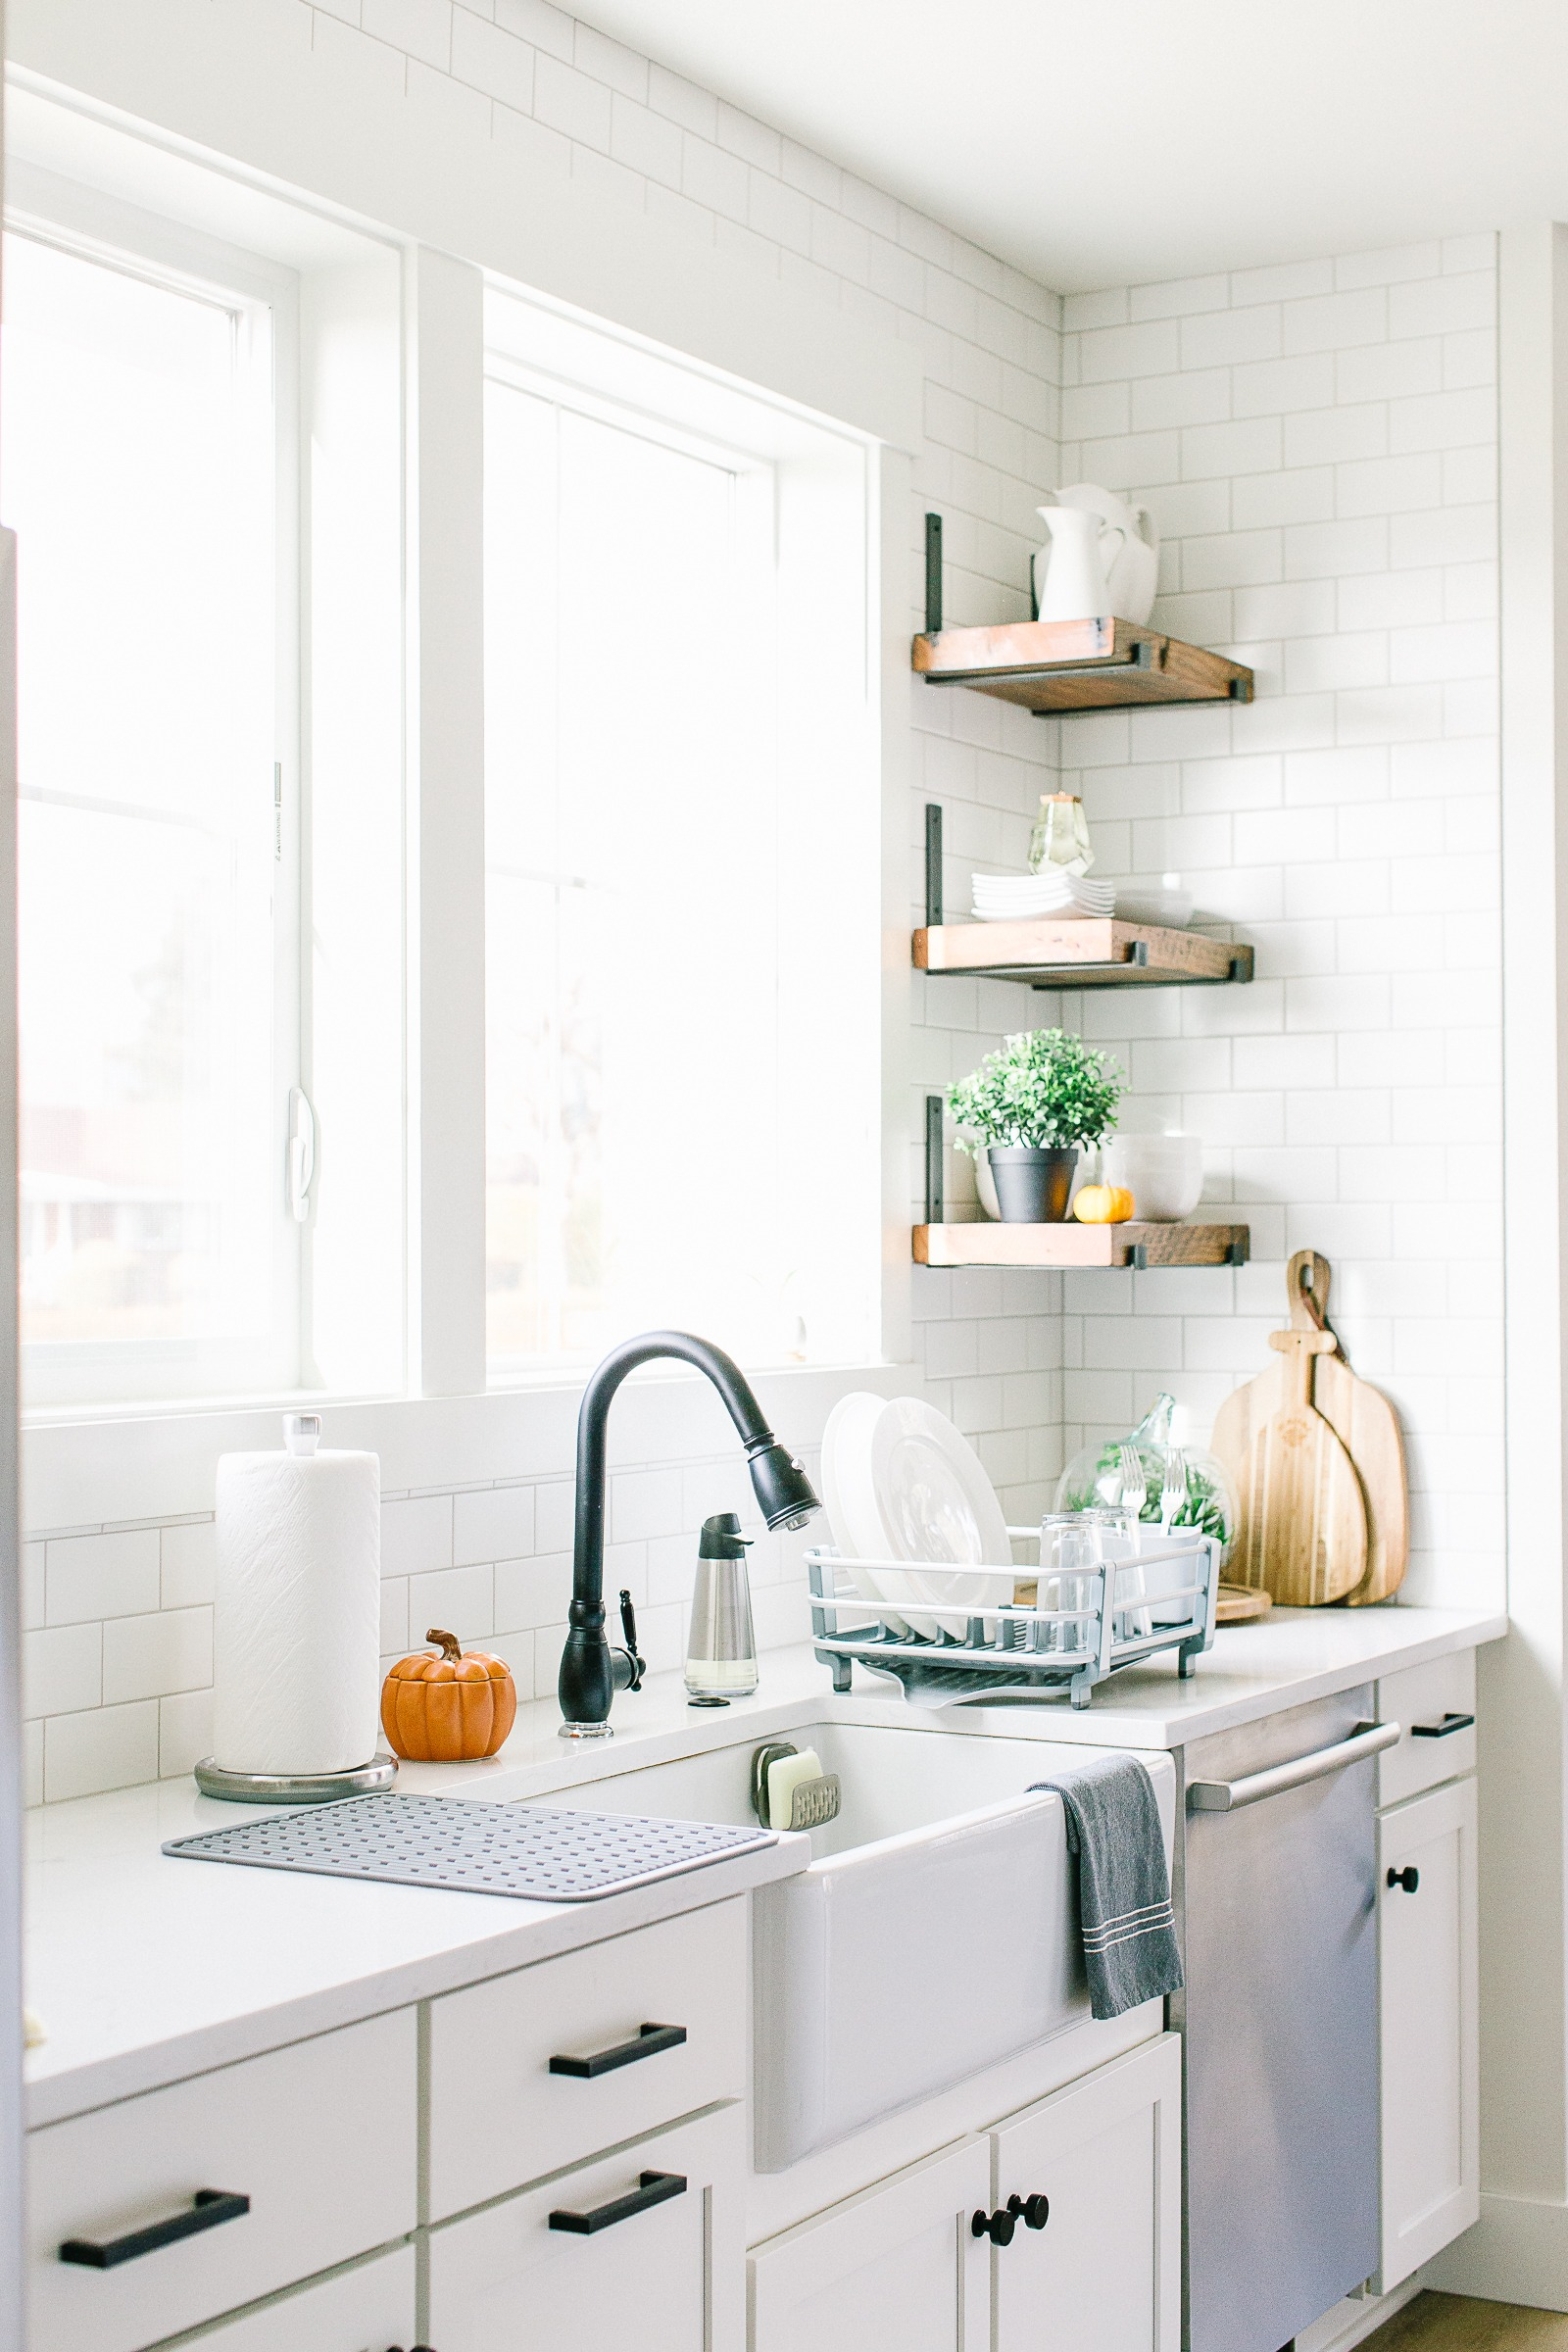 Holiday Kitchen Cleaning Is Easier with OXO